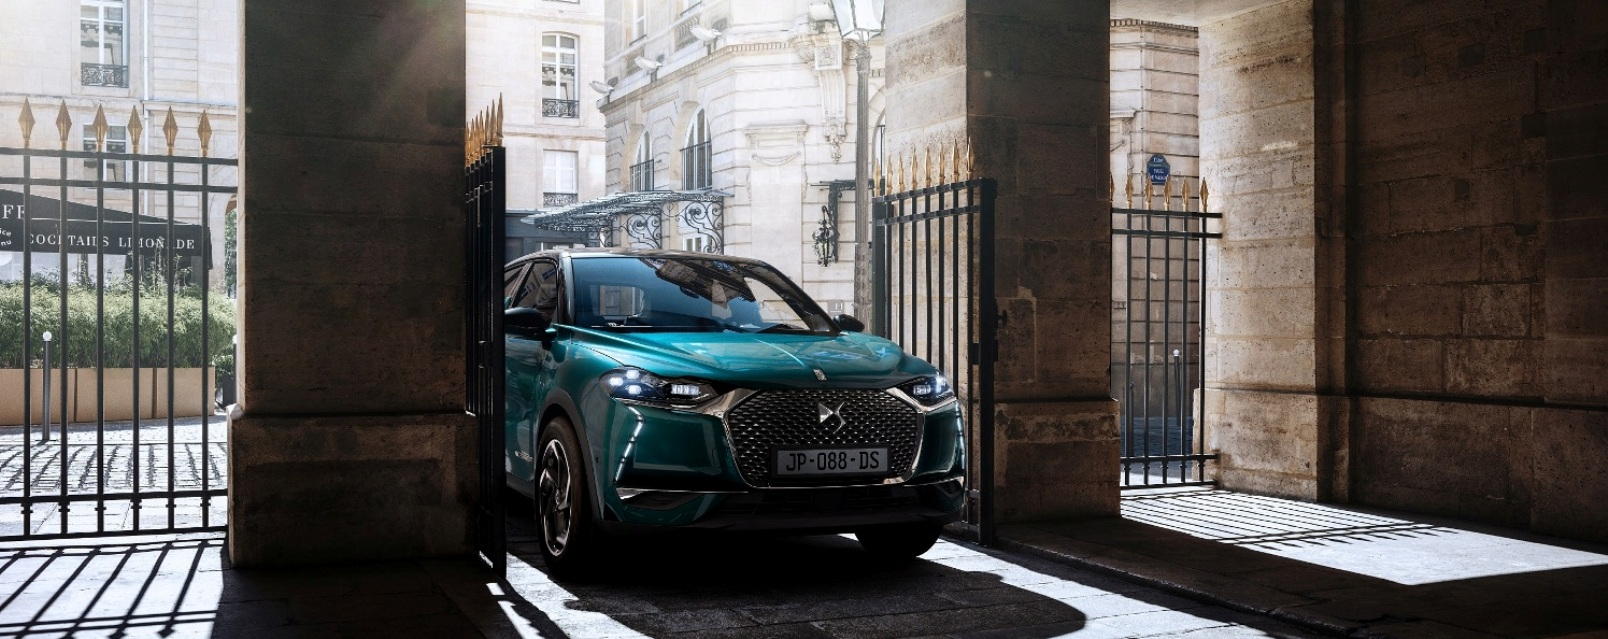 Ds 3 Crossback (4)